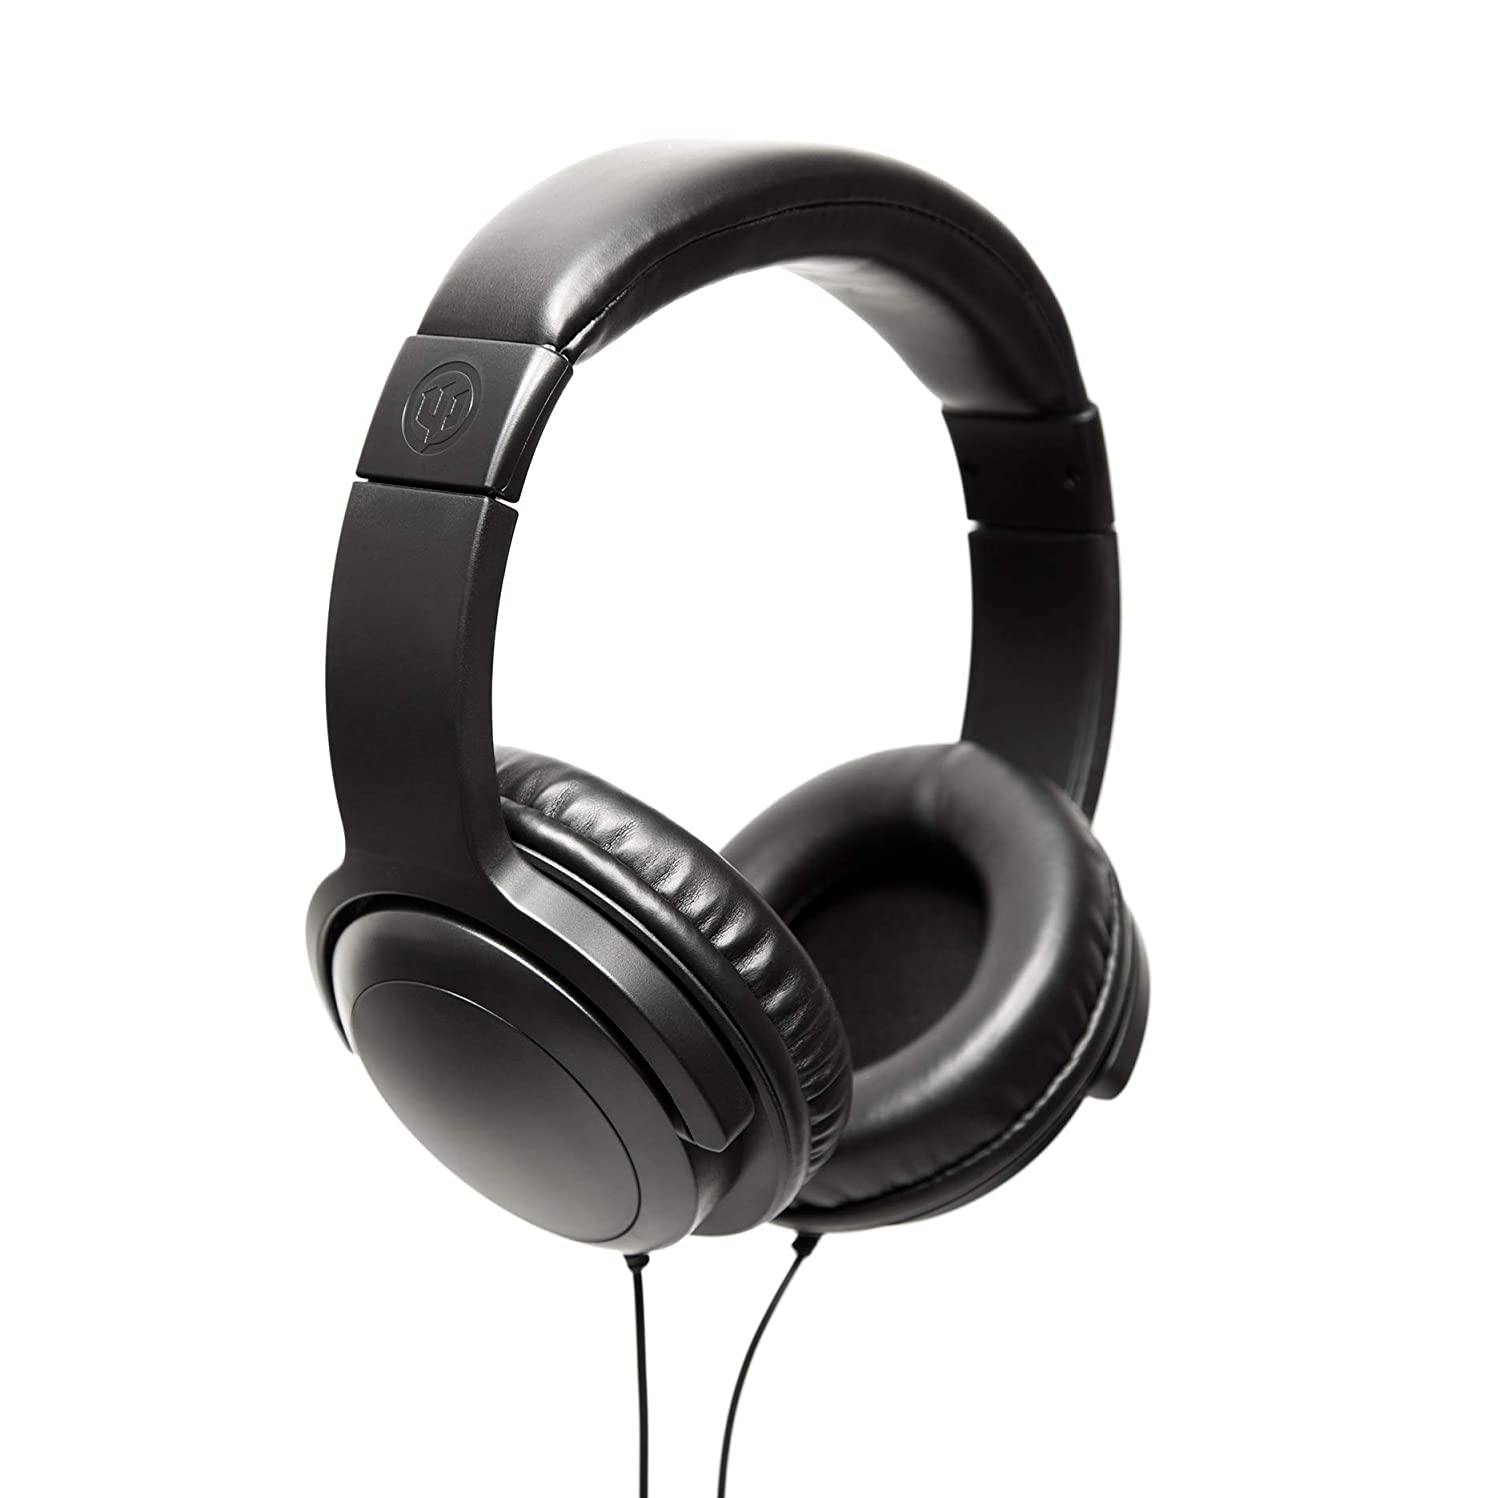 Wicked Audio Artifact Over Ear Headphones with Enhanced Bass, Black